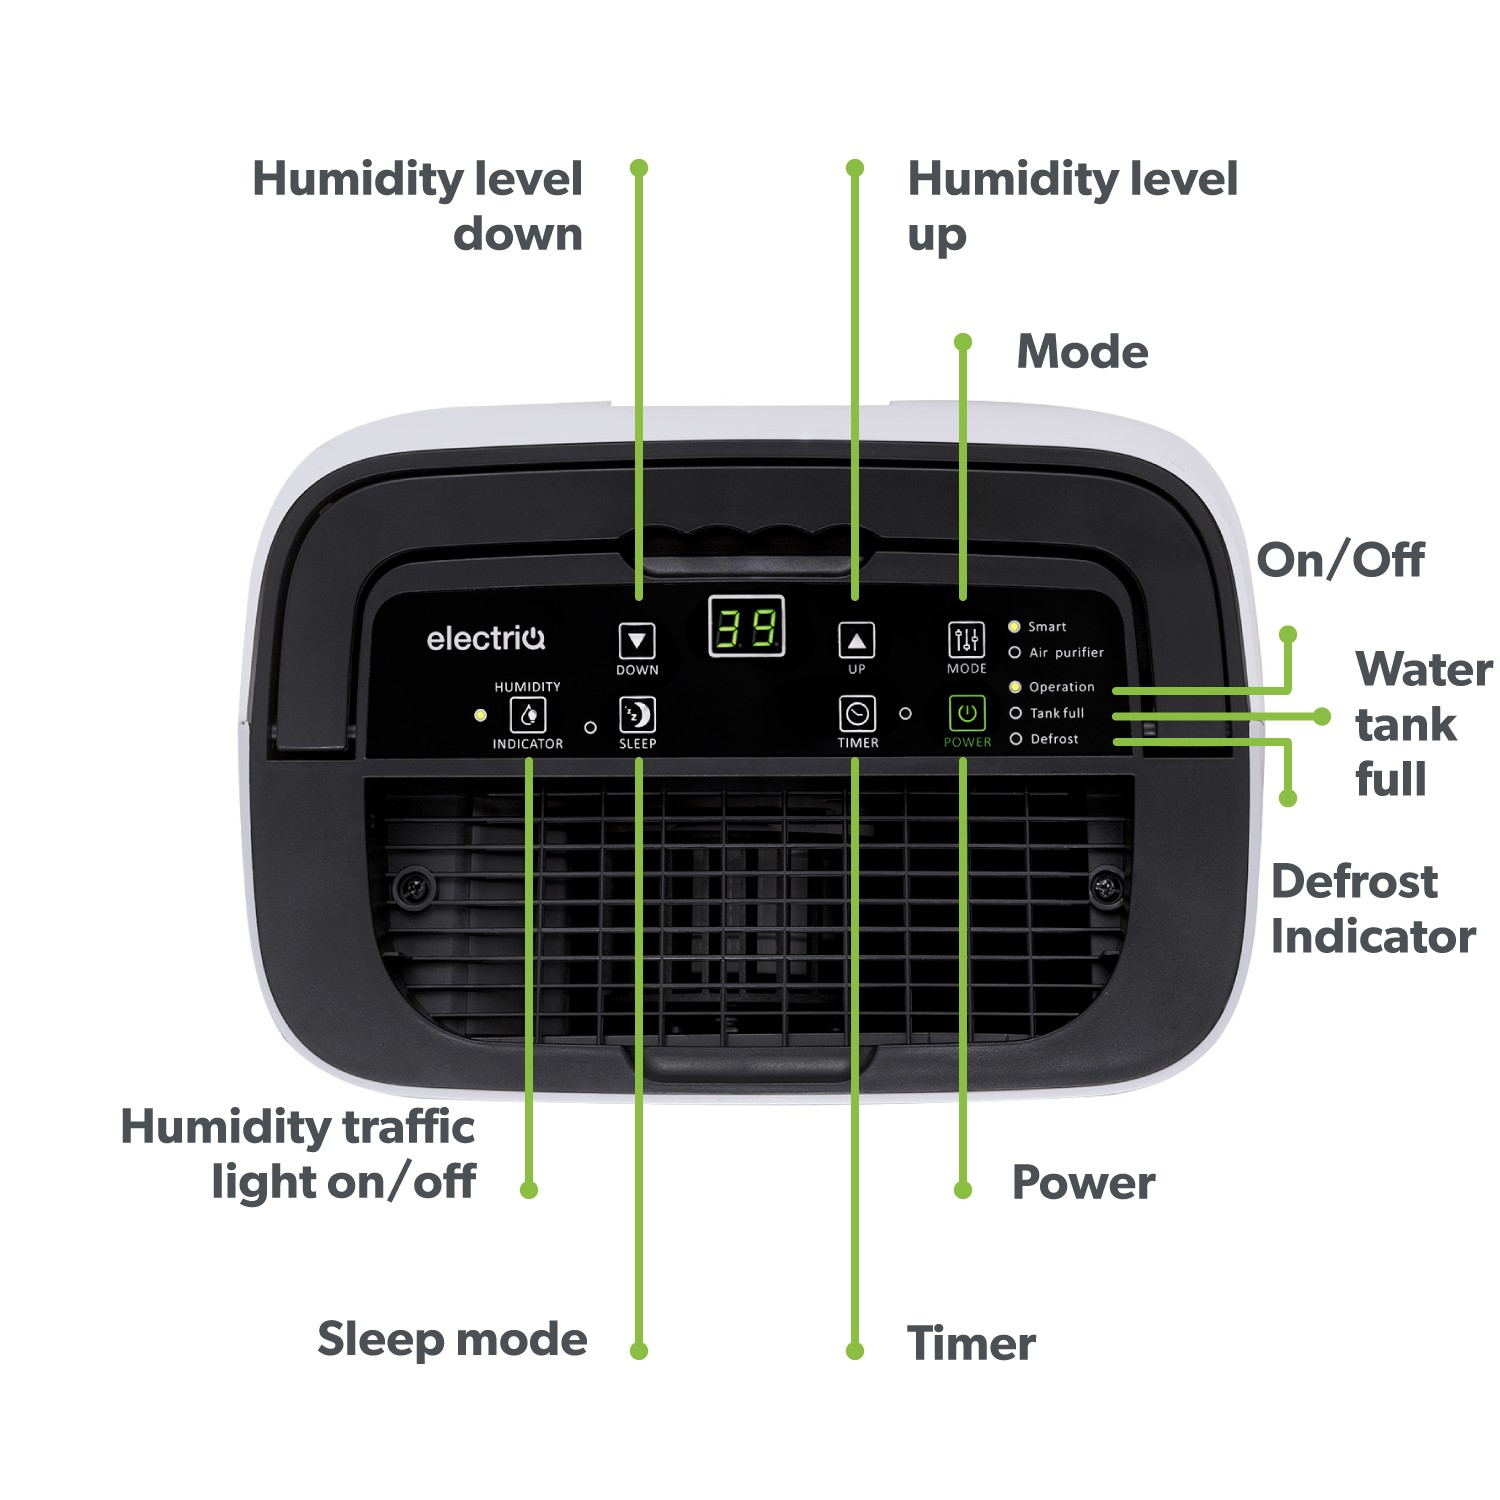 GRADE A1 electriQ 12L Smart Wi Fi Alexa Dehumidifier for up to 3 bed house with Air Purifier